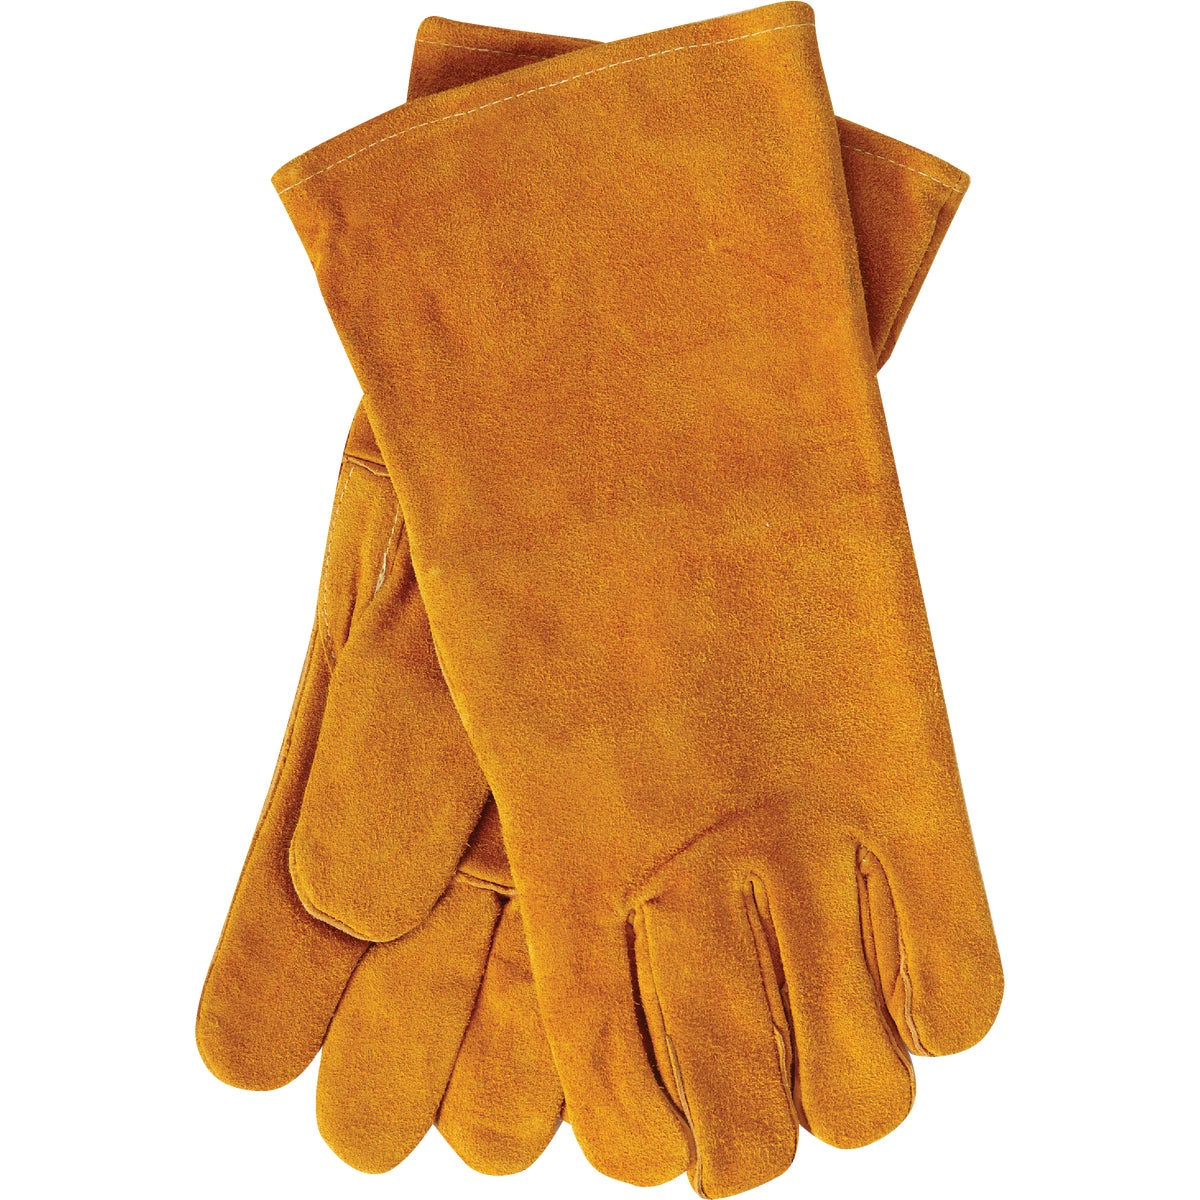 HEARTH LEATHER GLOVES - 30-2682403 by Seymour Mfg Co